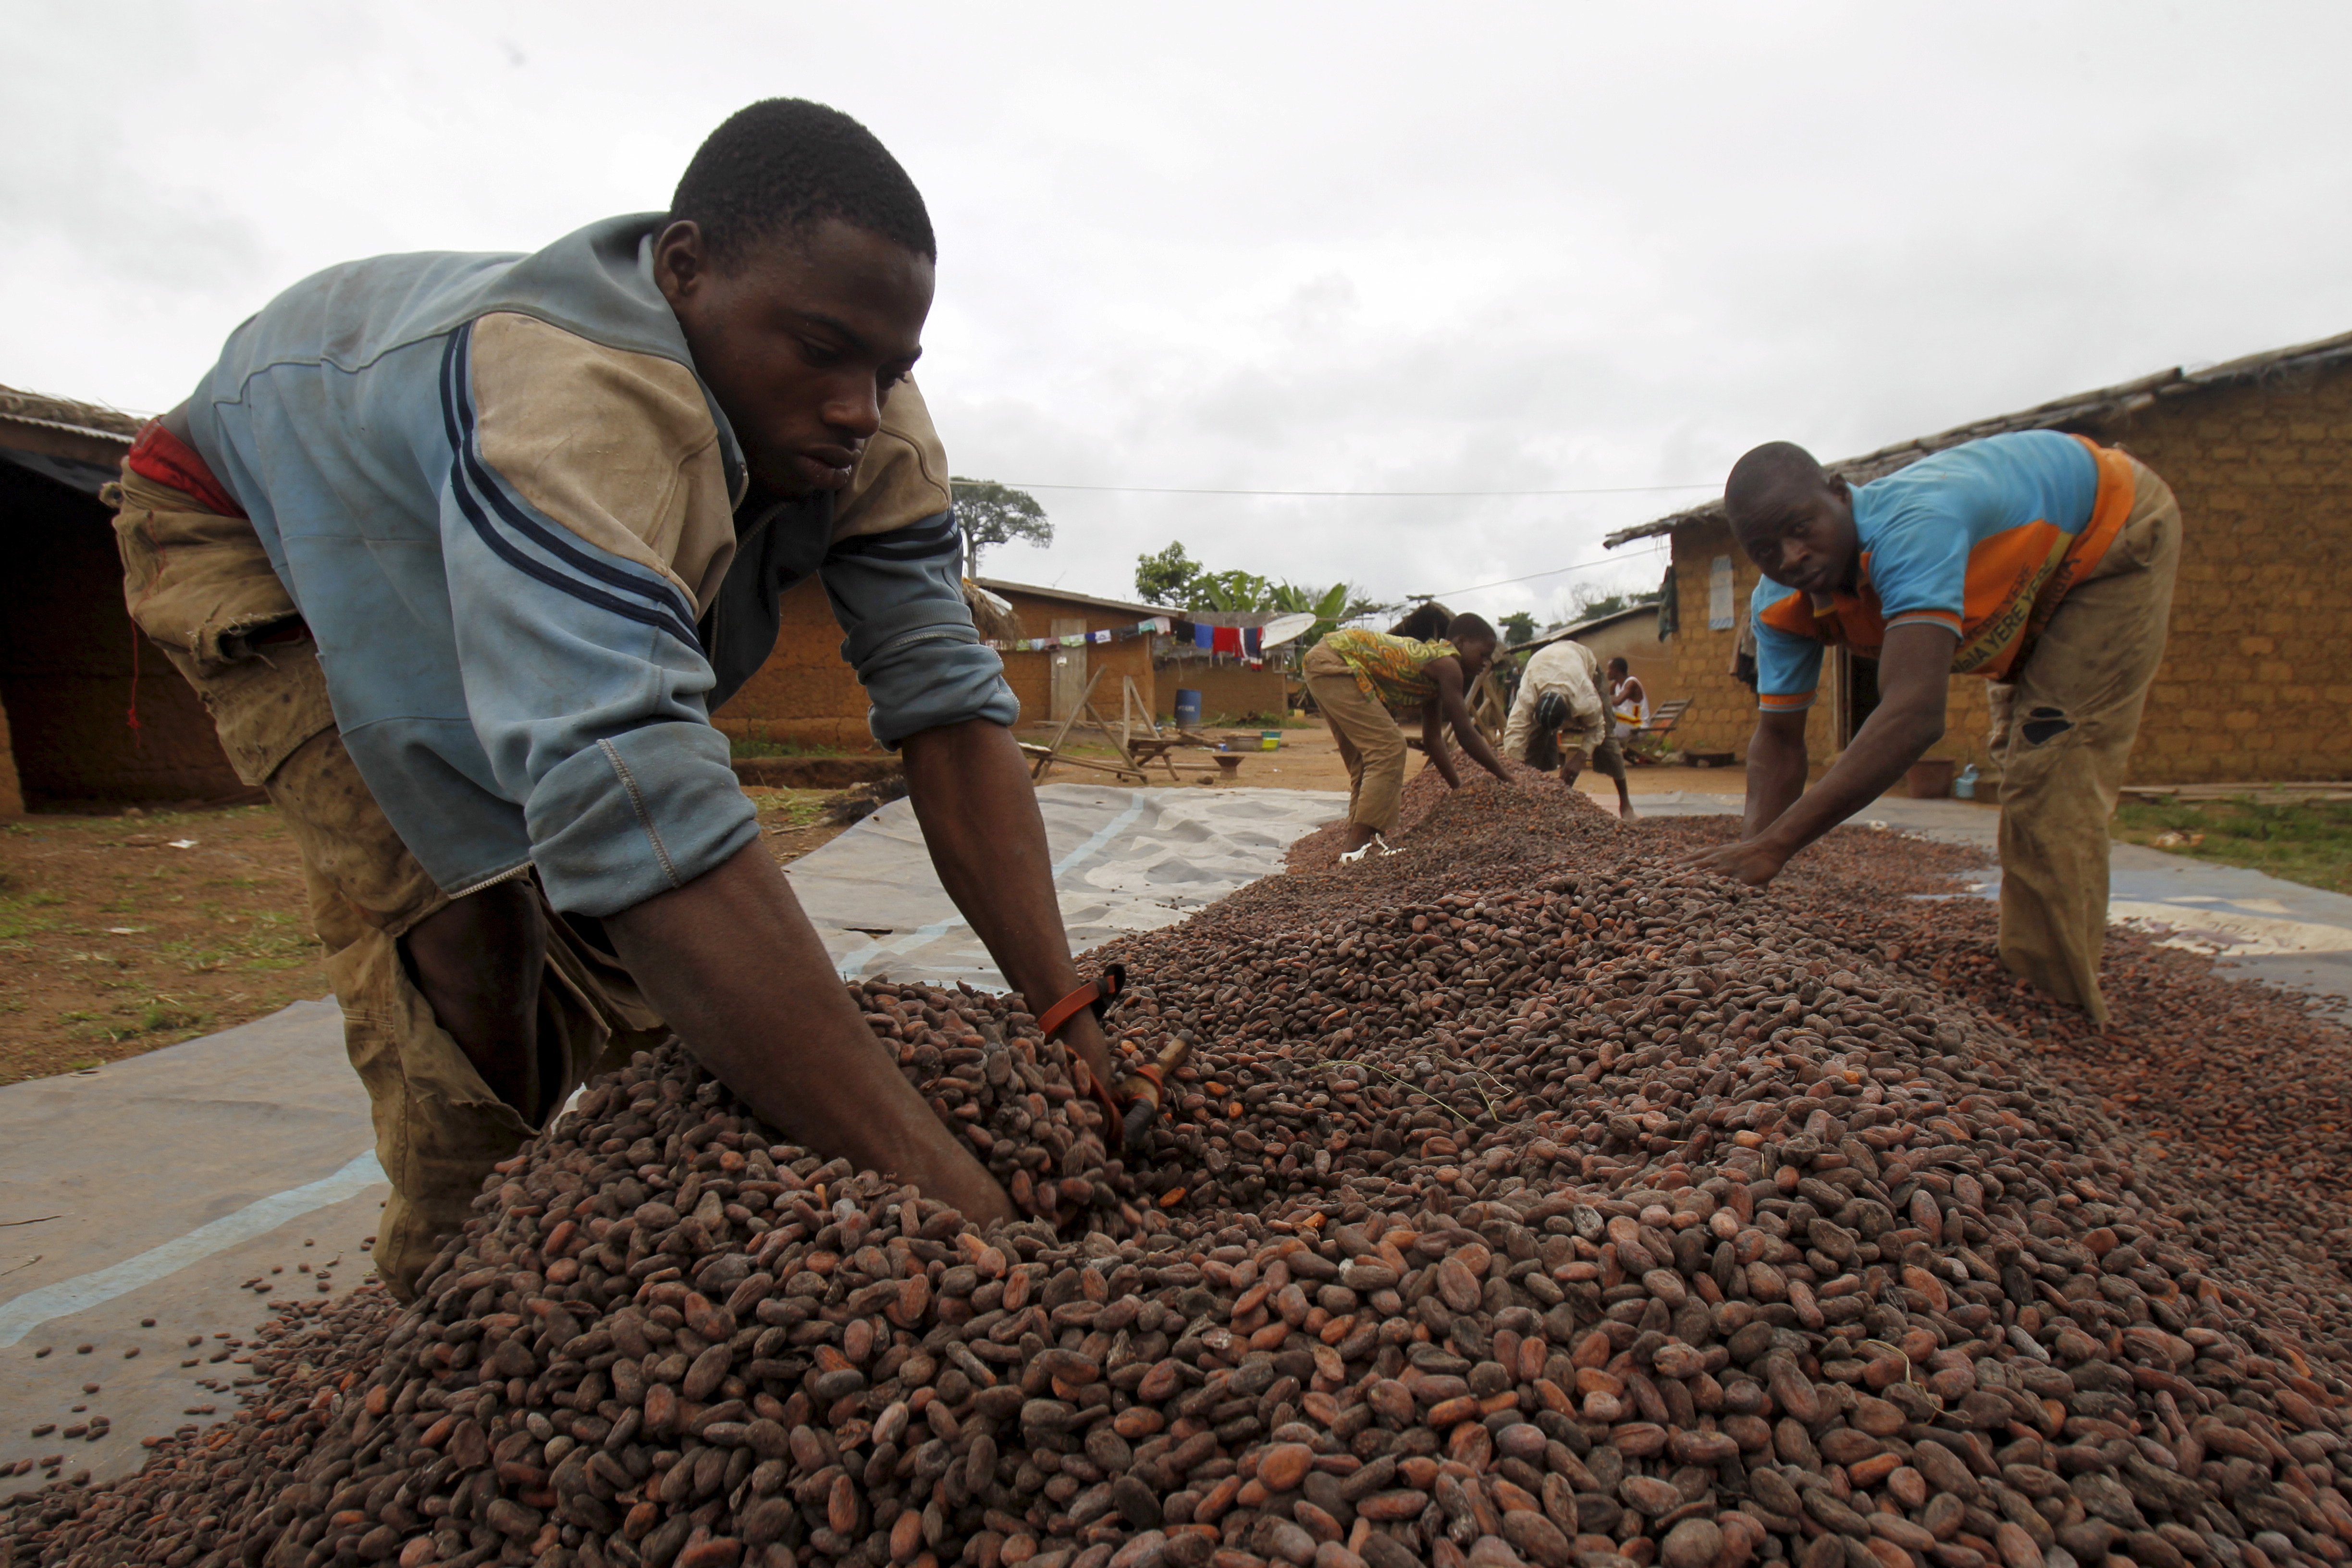 Infrastructure, funding, corruption and bureaucracy pose huge obstacles to boosting Africa's farmers.